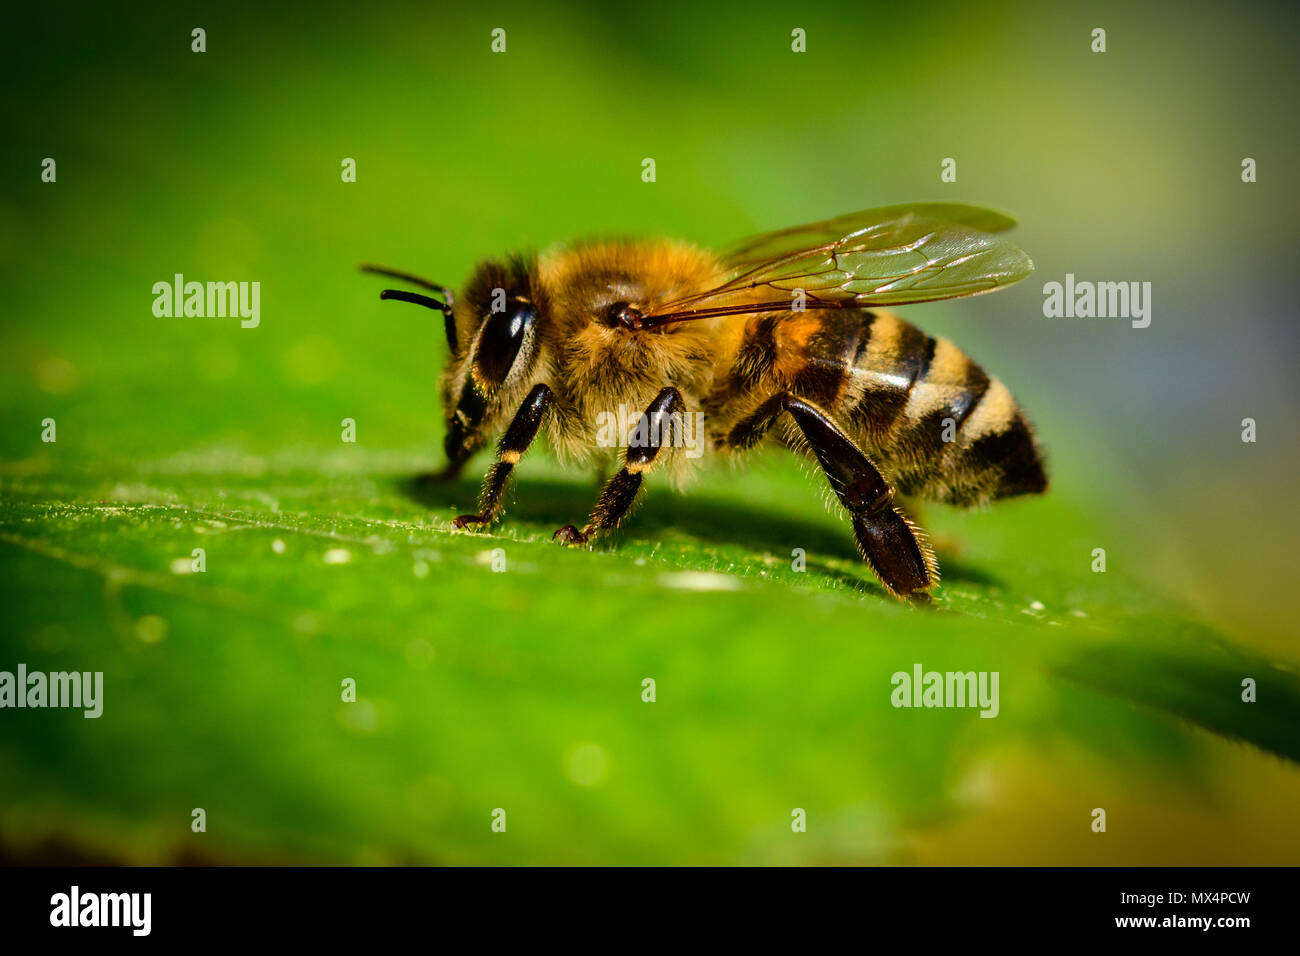 Bumblebee in Linden Flowers, close up of Bumble bee collecting nectar, honey - Stock Image